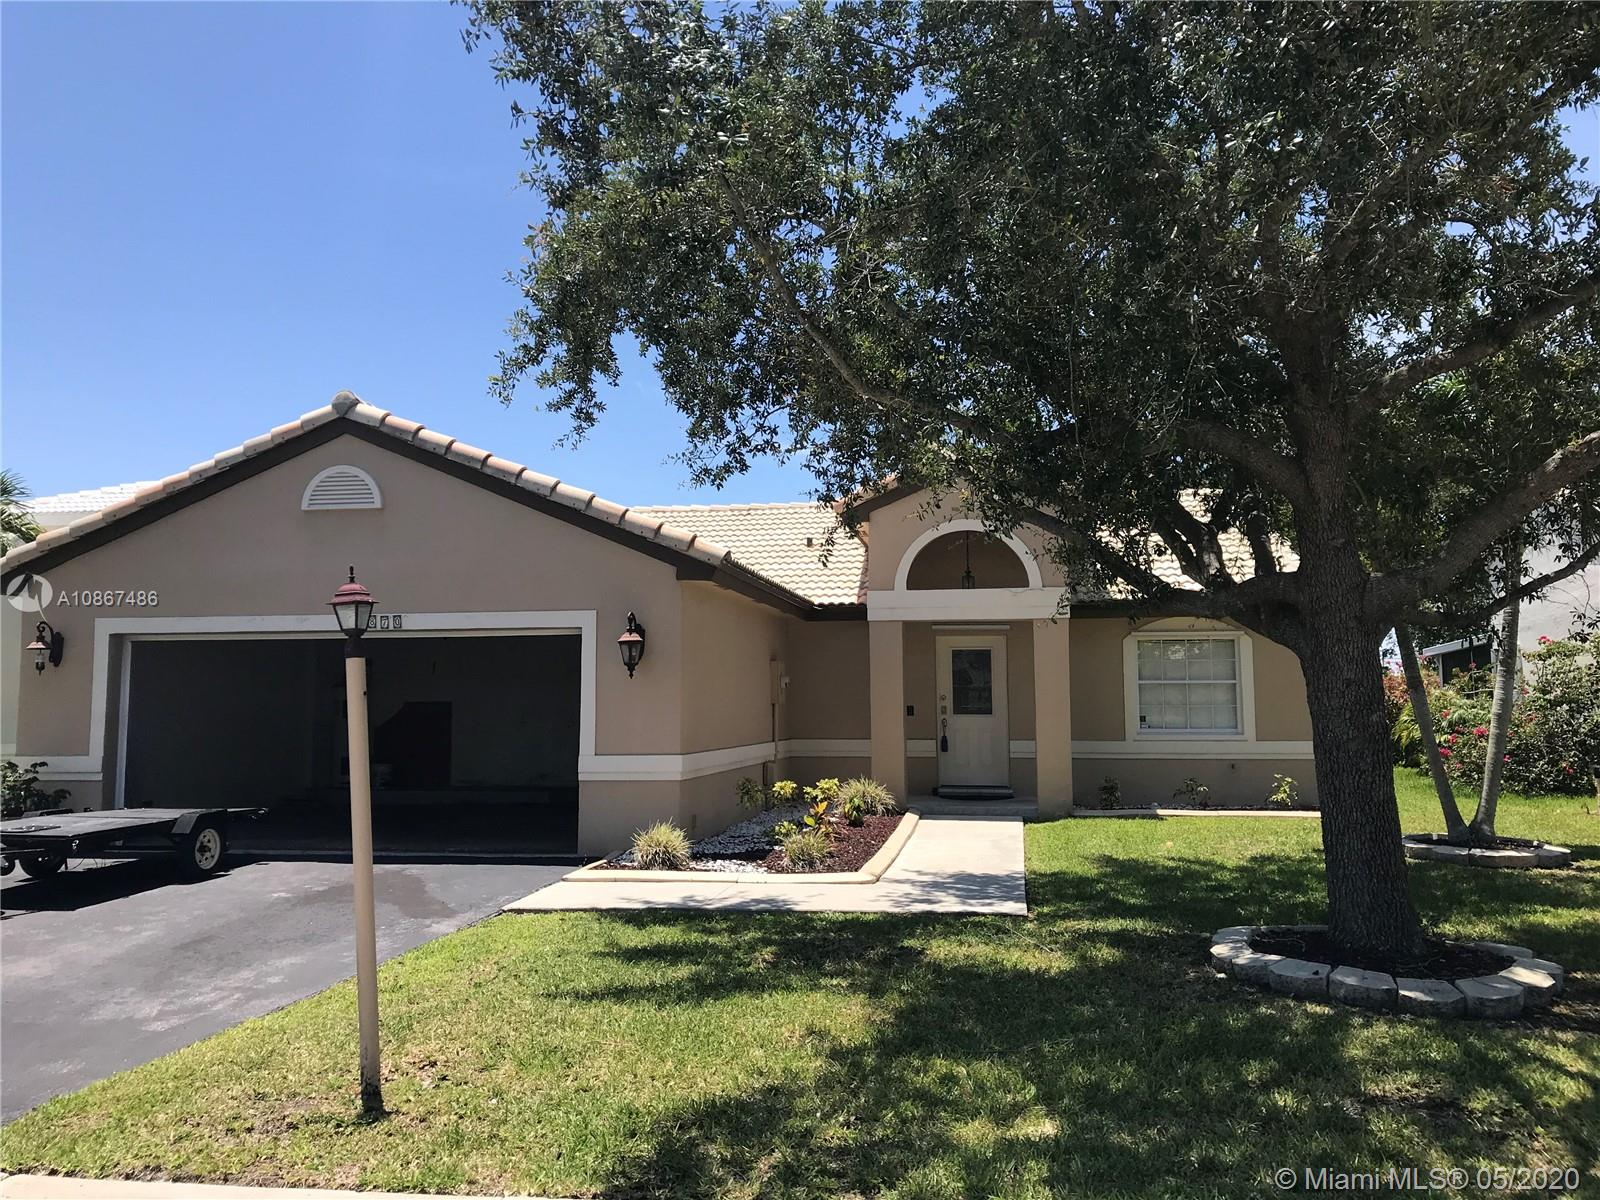 Nice 3/2 with den in the very desirable neighborhood of  Chapel Oaks.  A+ schools in the area, Chapel Trail Elementary, Silver Trail Middle and West Broward High School.  This house is located West of I 75 off of Pines Blvd and 186th St.  This is a well maintained neighborhood with reasonably priced properties for the area.